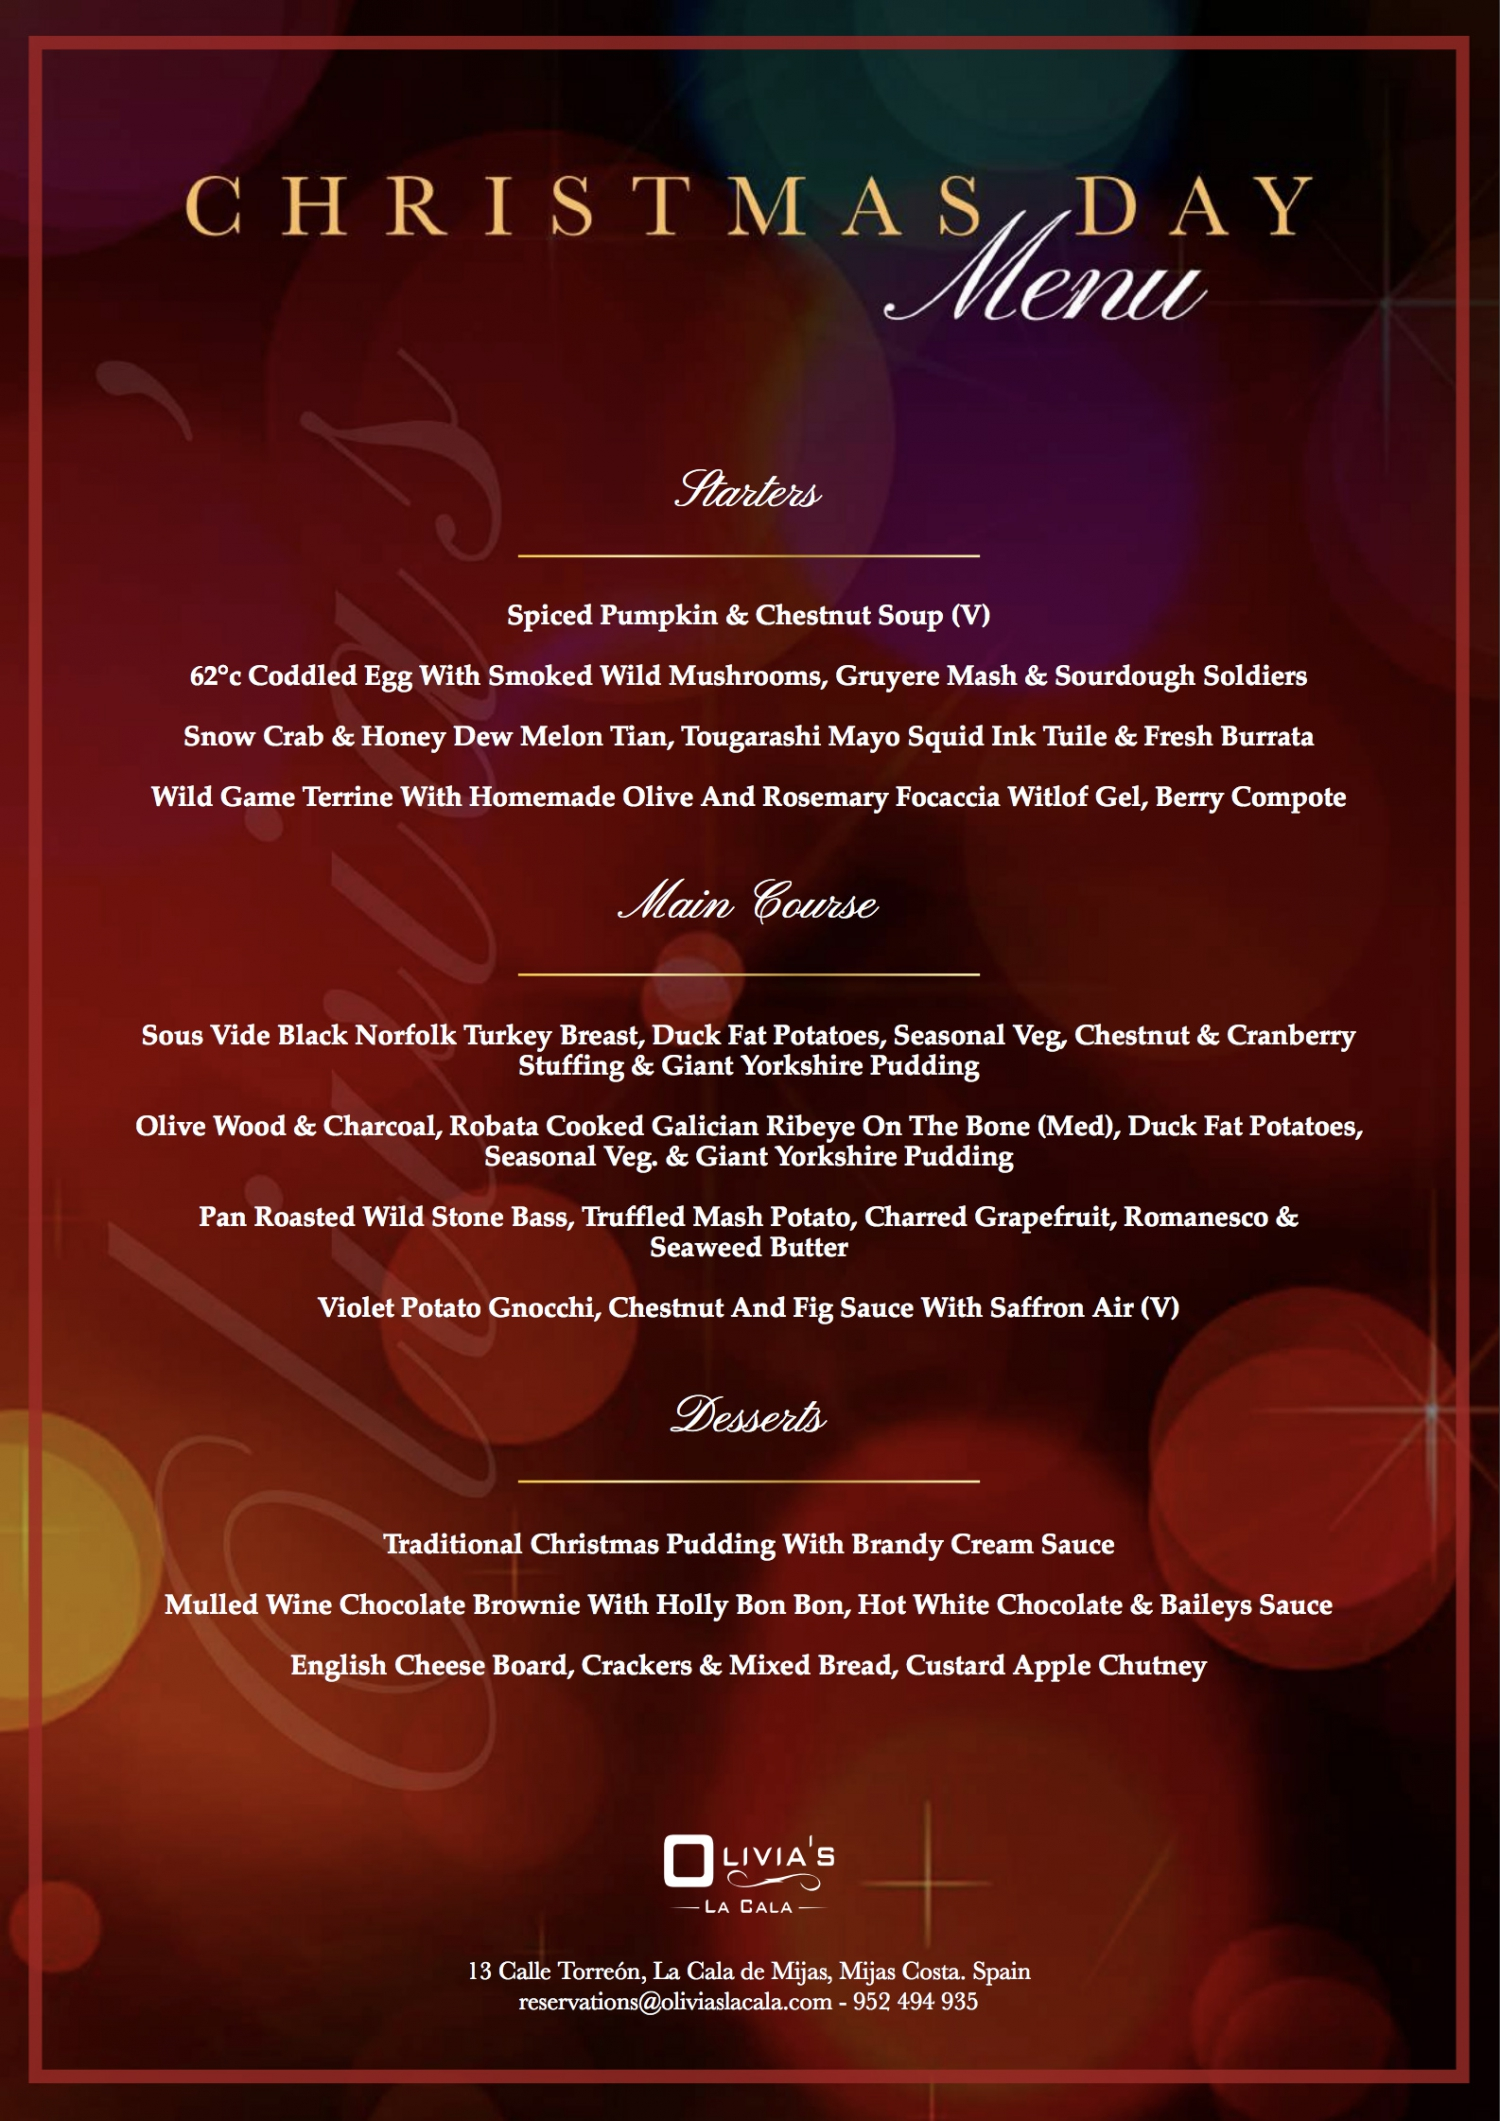 Christmas Day Menu at Olivias la Cala